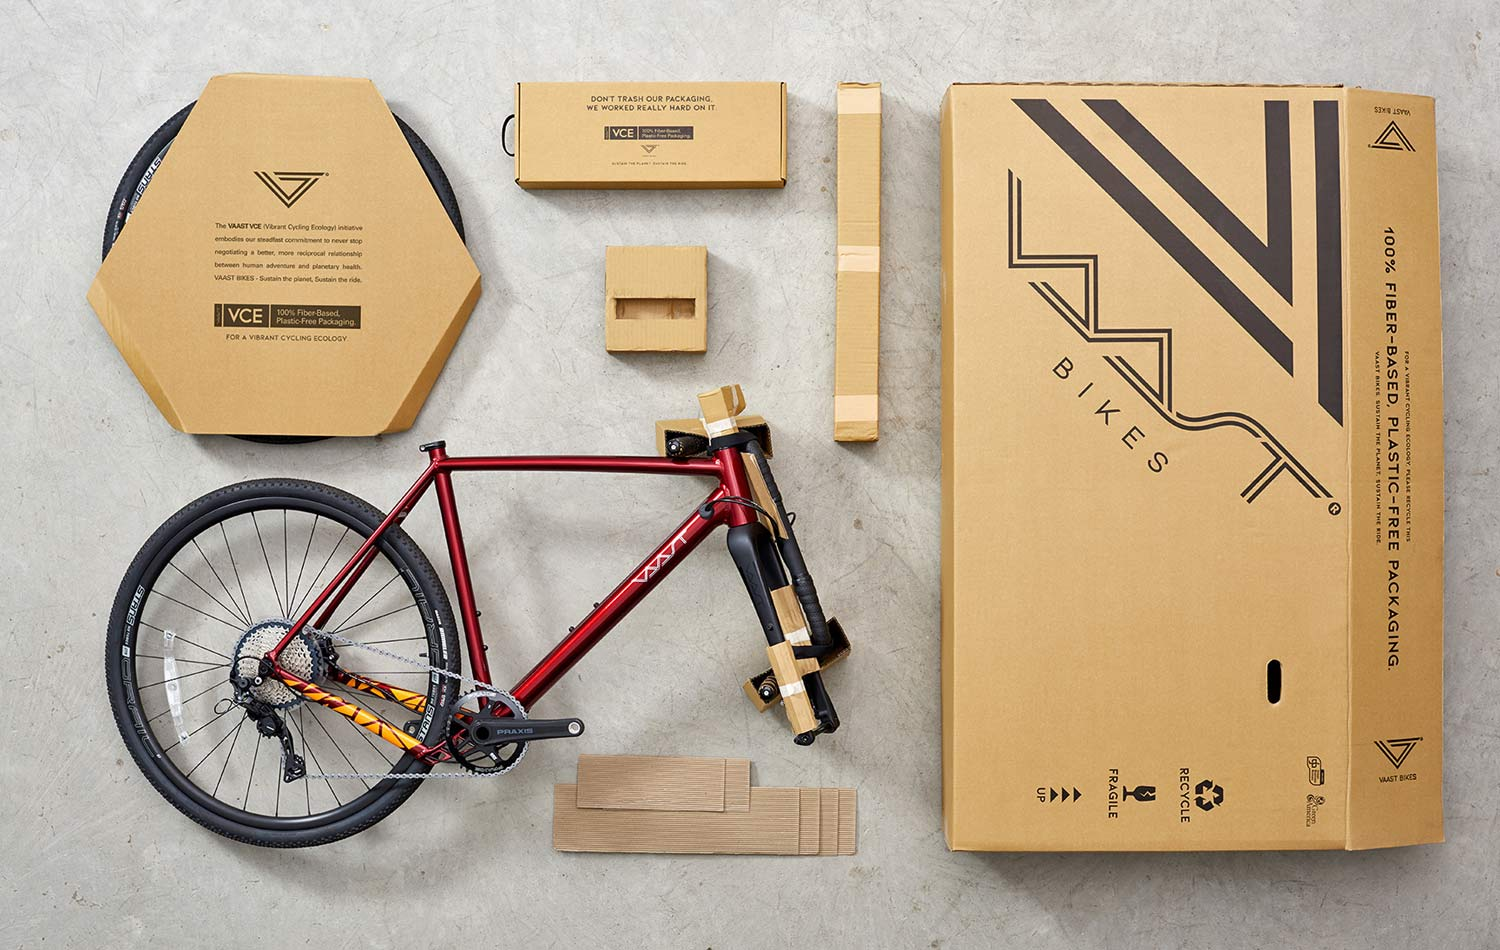 Vaast sustainability, fiber based recycled recyclable bike packaging, no plastics, more sustainable